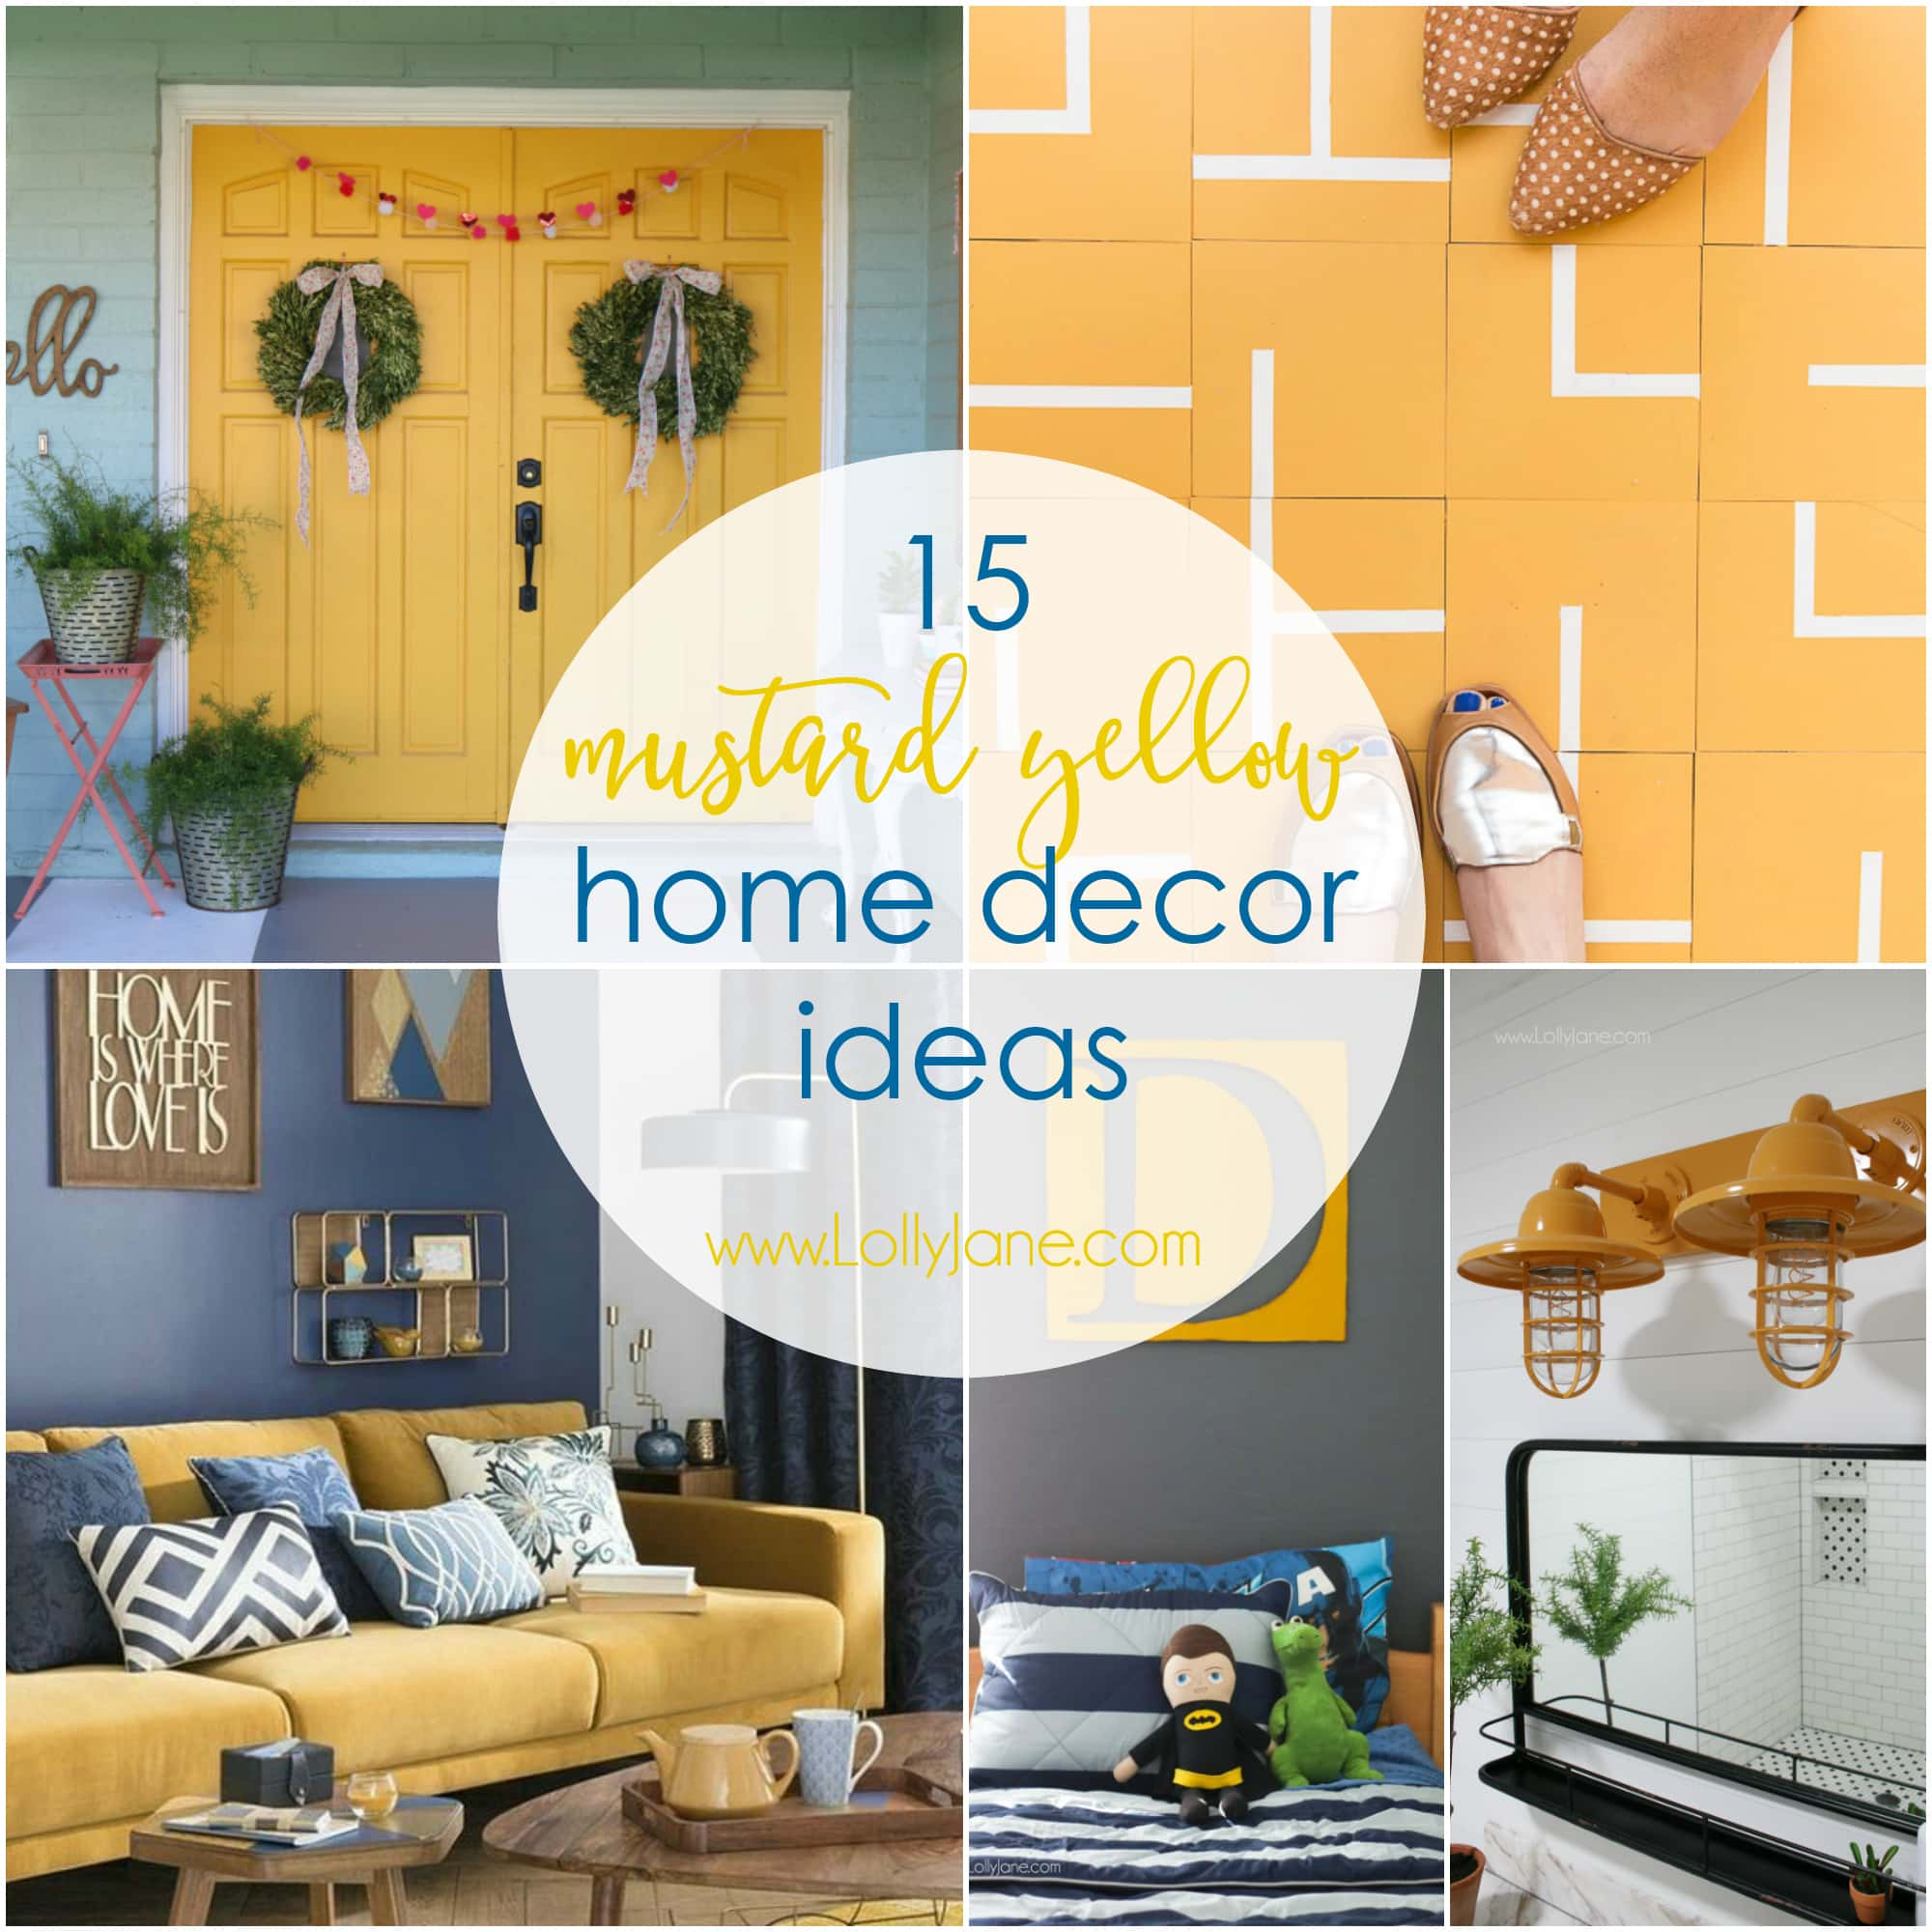 15 Mustard Yellow Home Decor Ideas